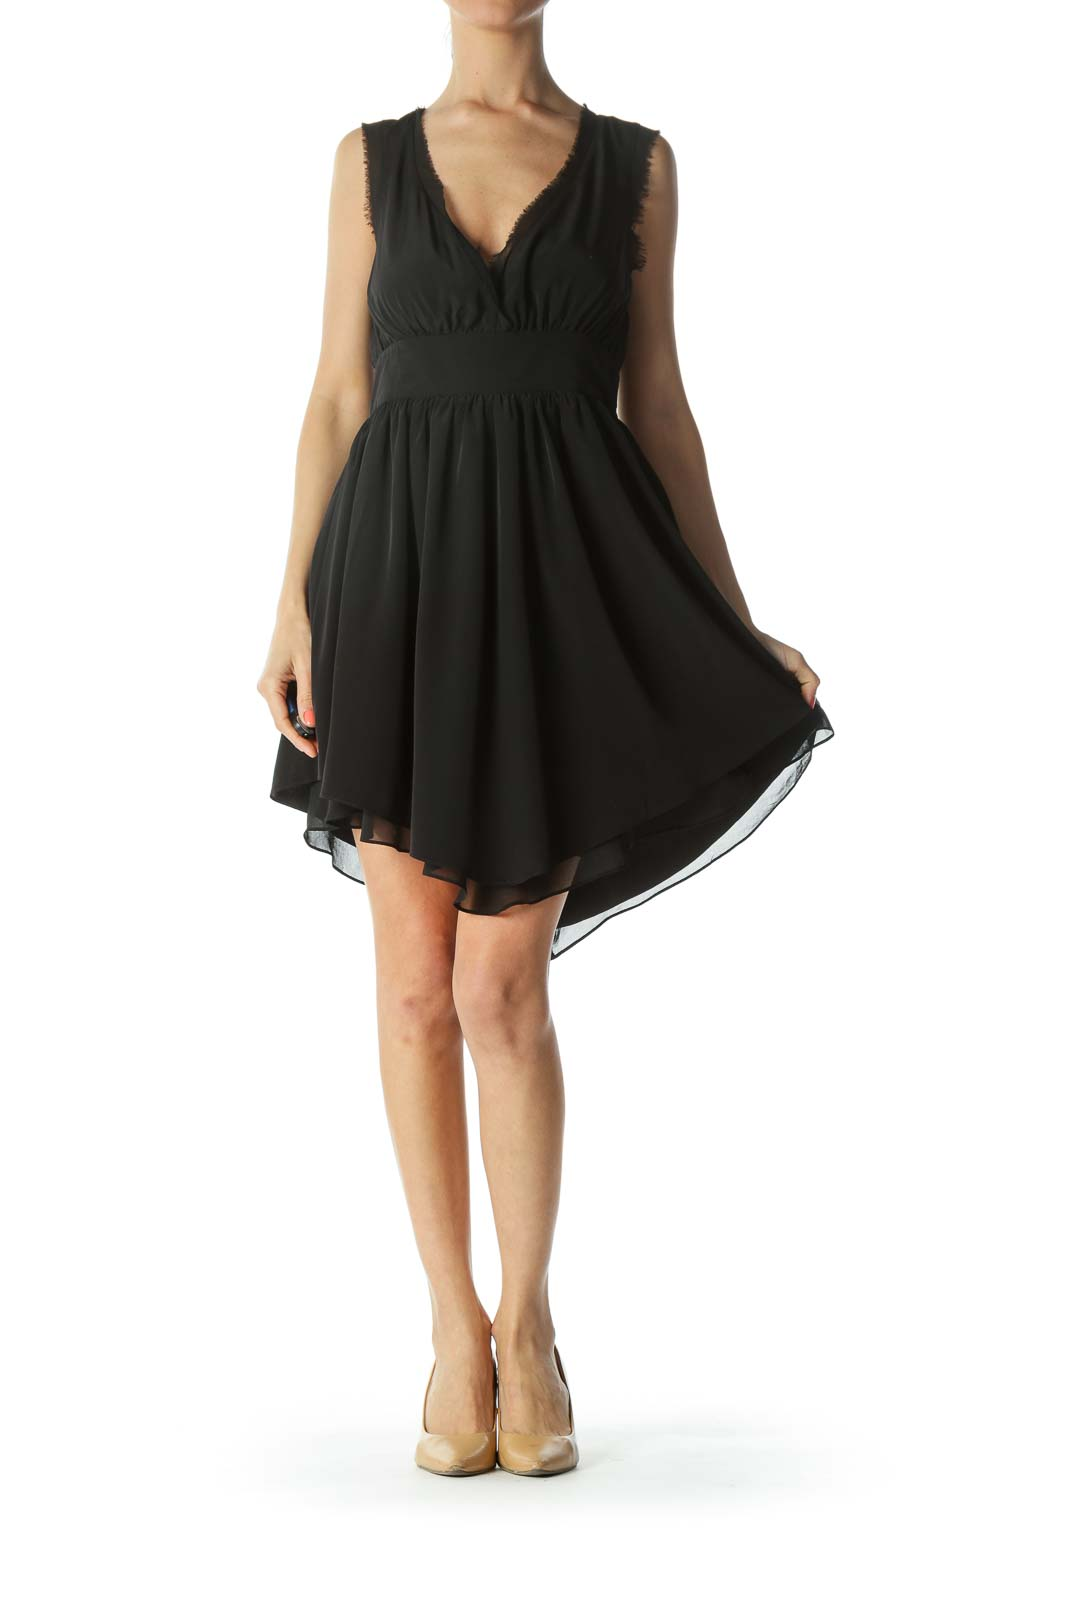 Black V-Neck Raw-Hem Cinched-Waist Flared Cocktail Dress